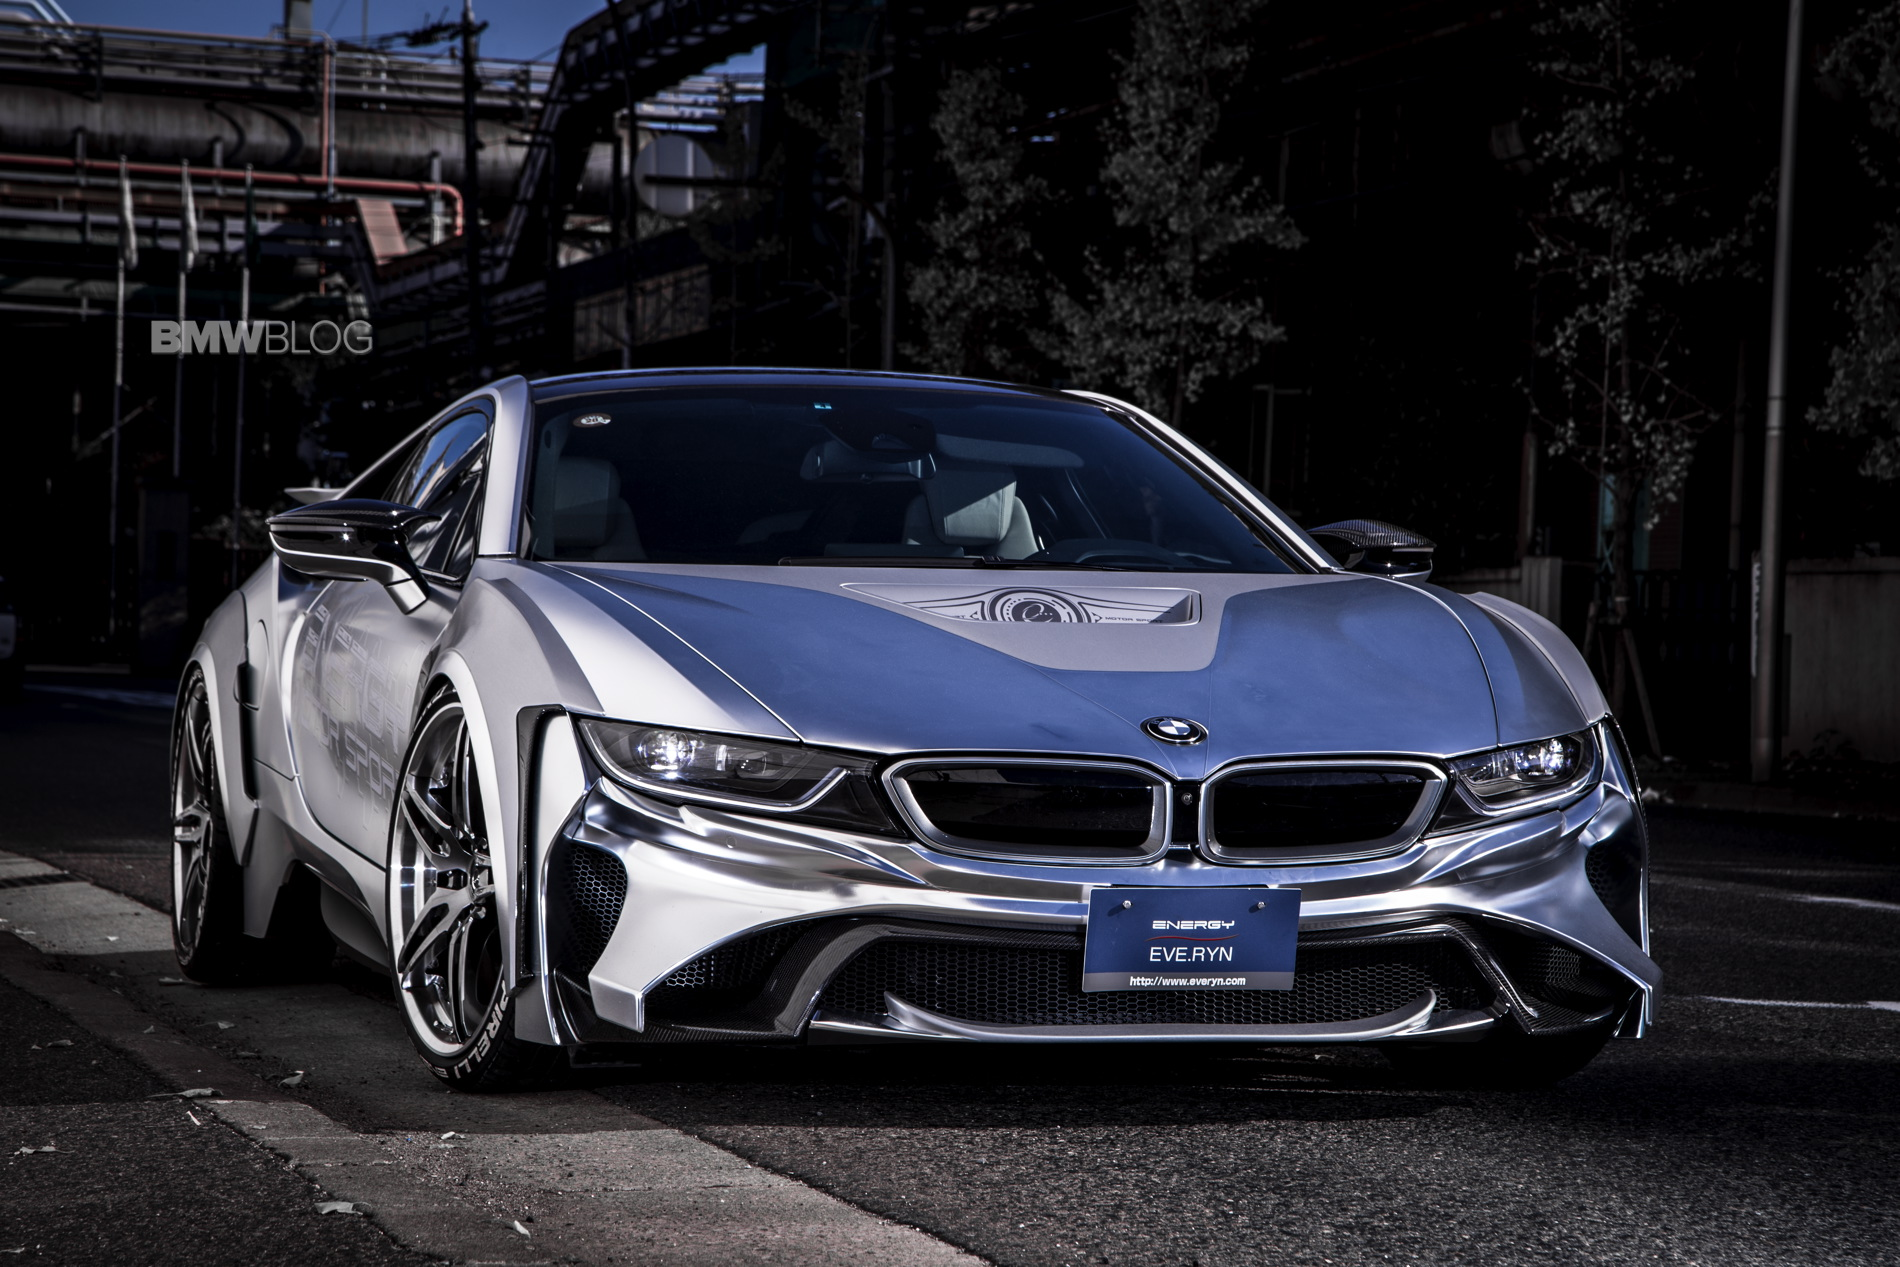 BMW i8 Cyber Edition images 19